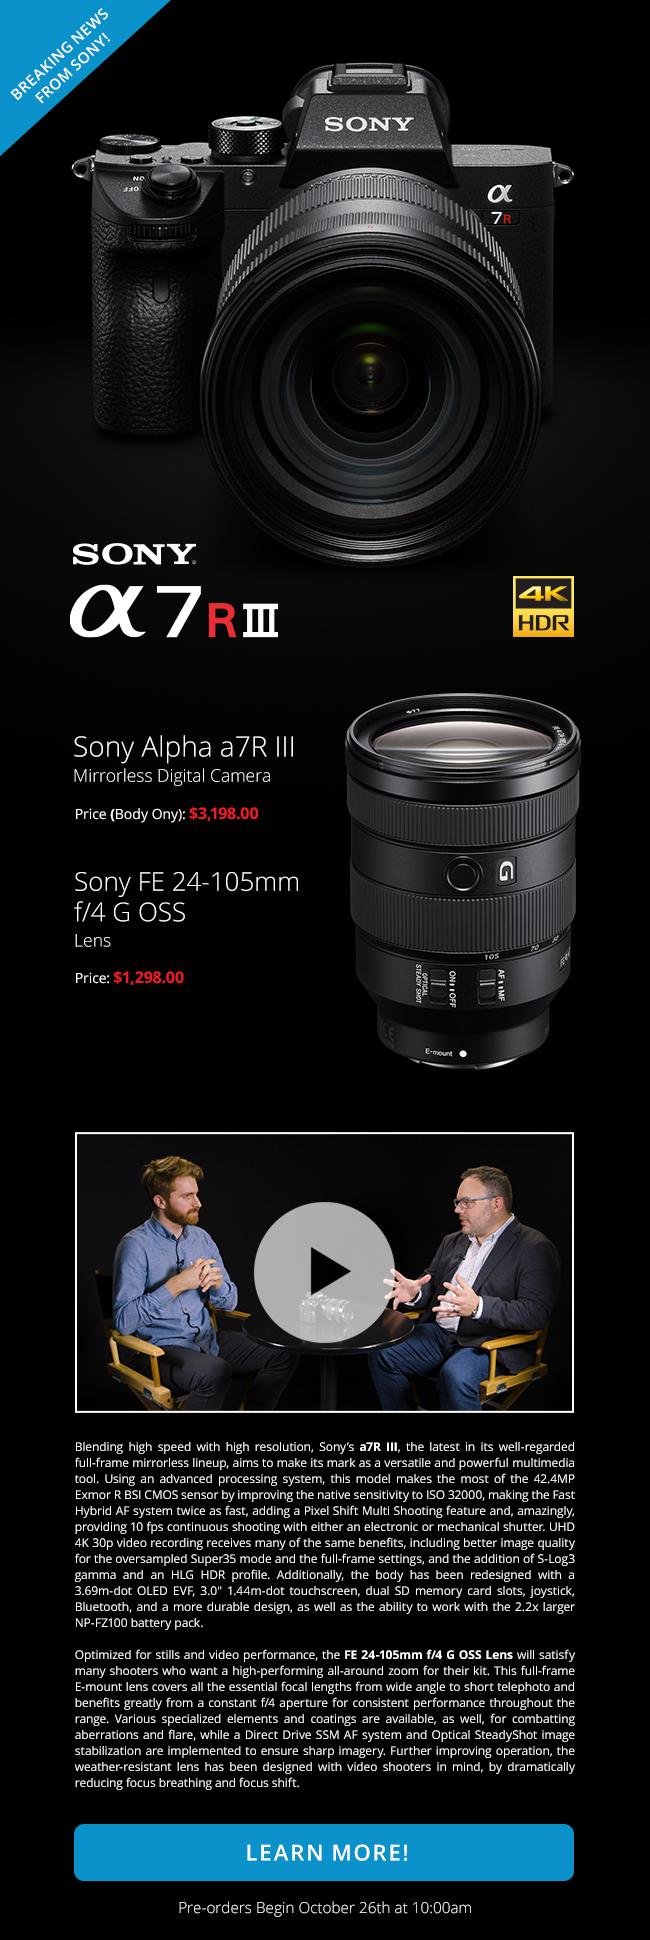 Breaking News from Sony! Sony Alpha a7 R III | Watch Announcement Now!